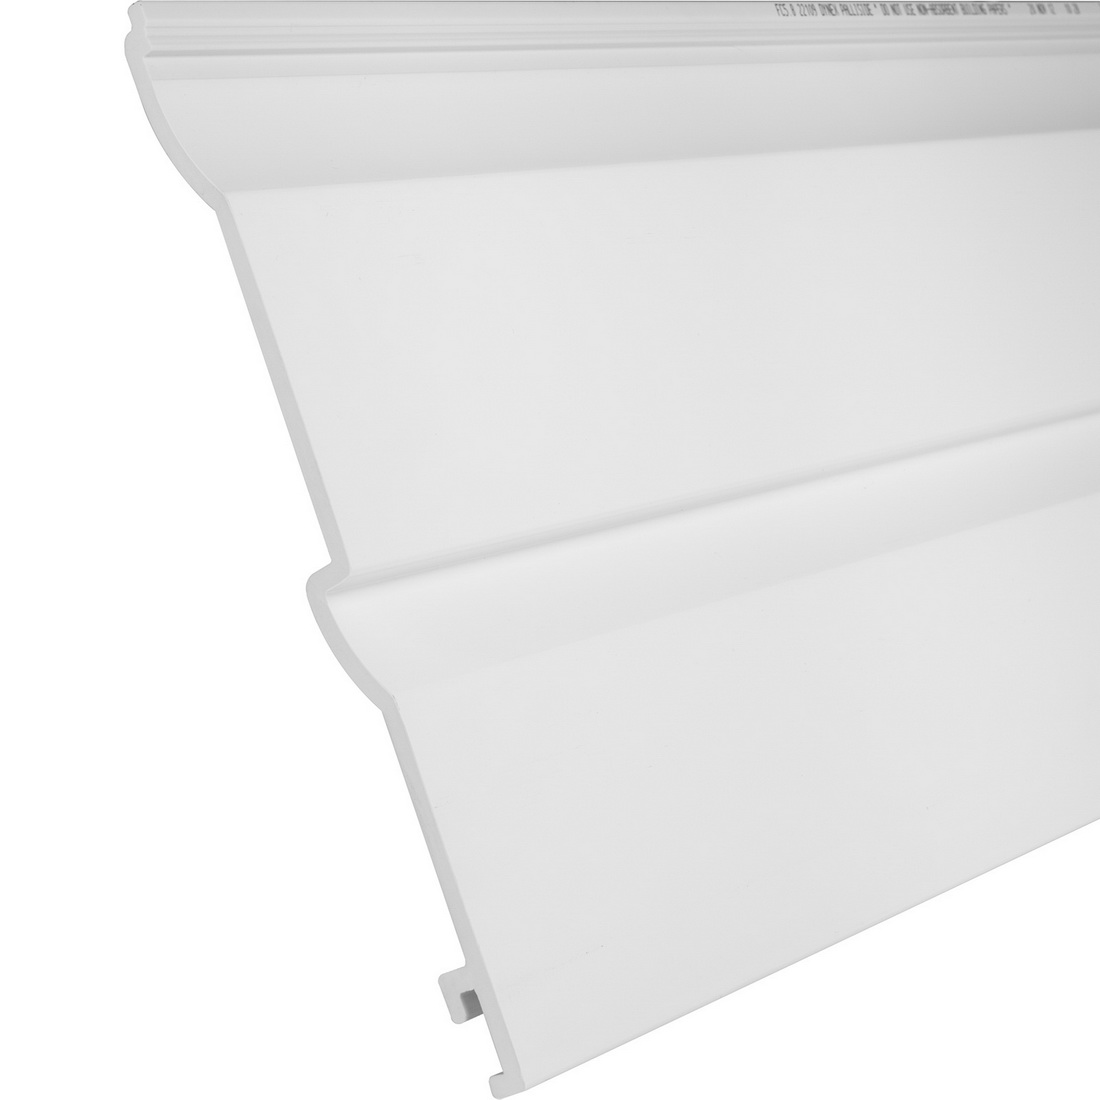 Palliside Traditional Weather Board 6.3 m x 260 mm Unplasticised PVC White FCTRAD6.3